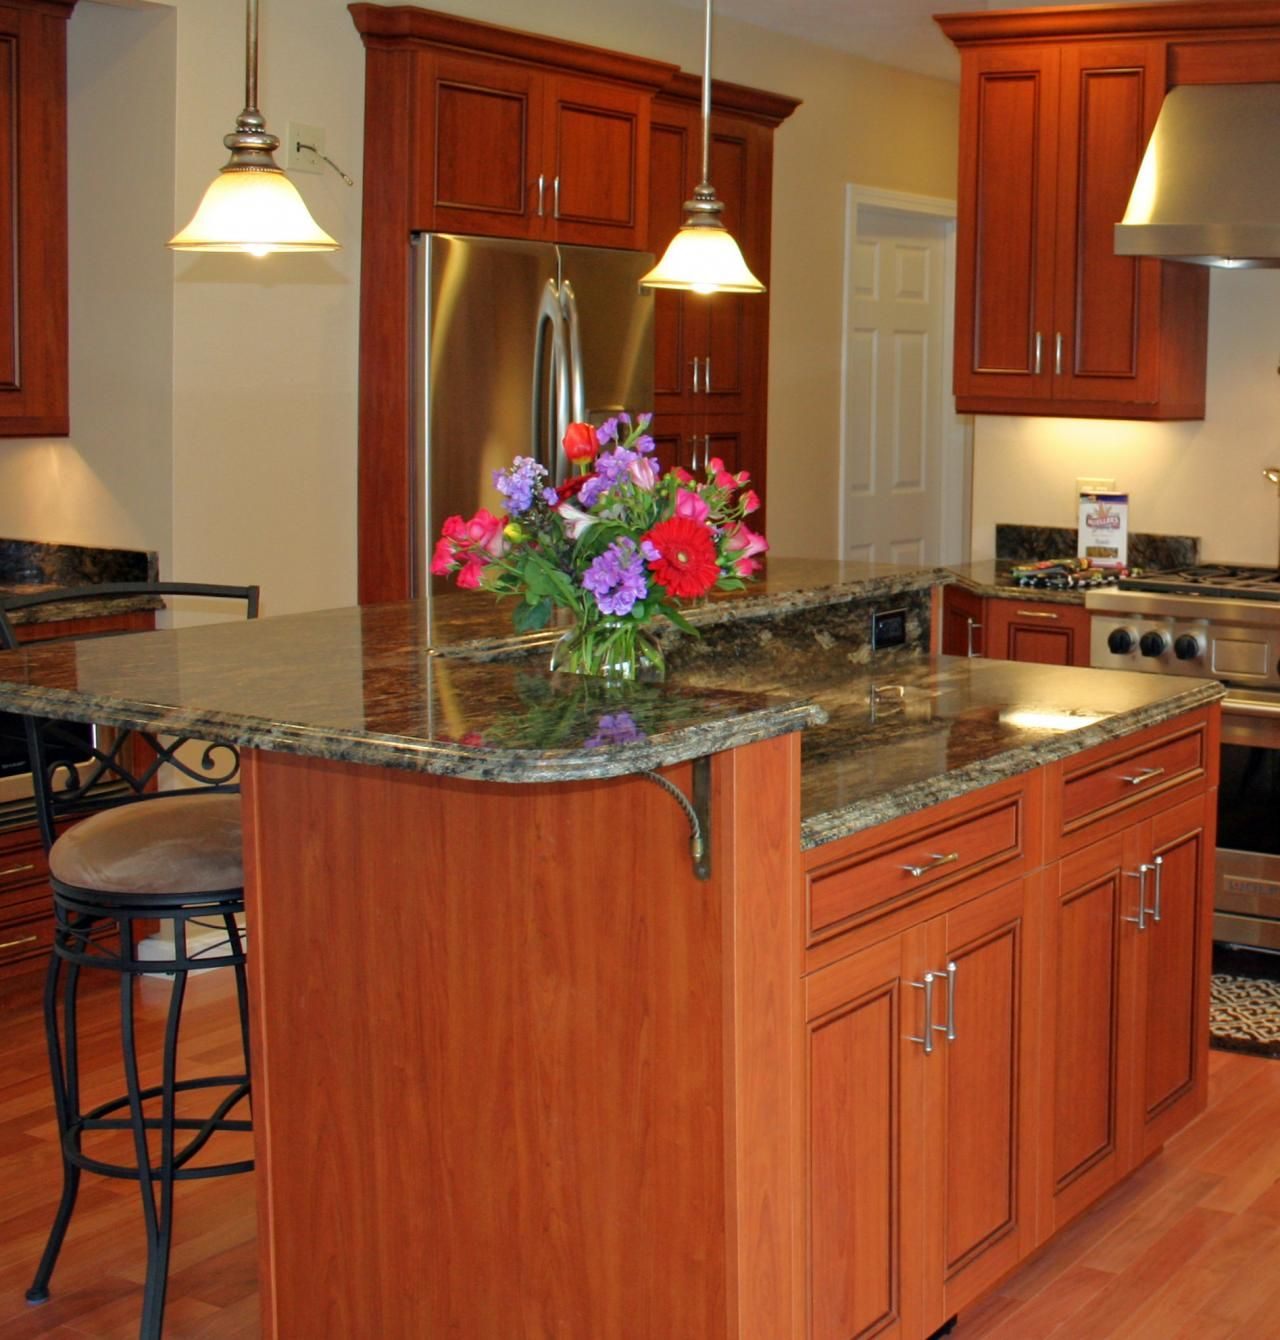 Kitchen Pictures With Islands: Kitchen Island With 2 Levels